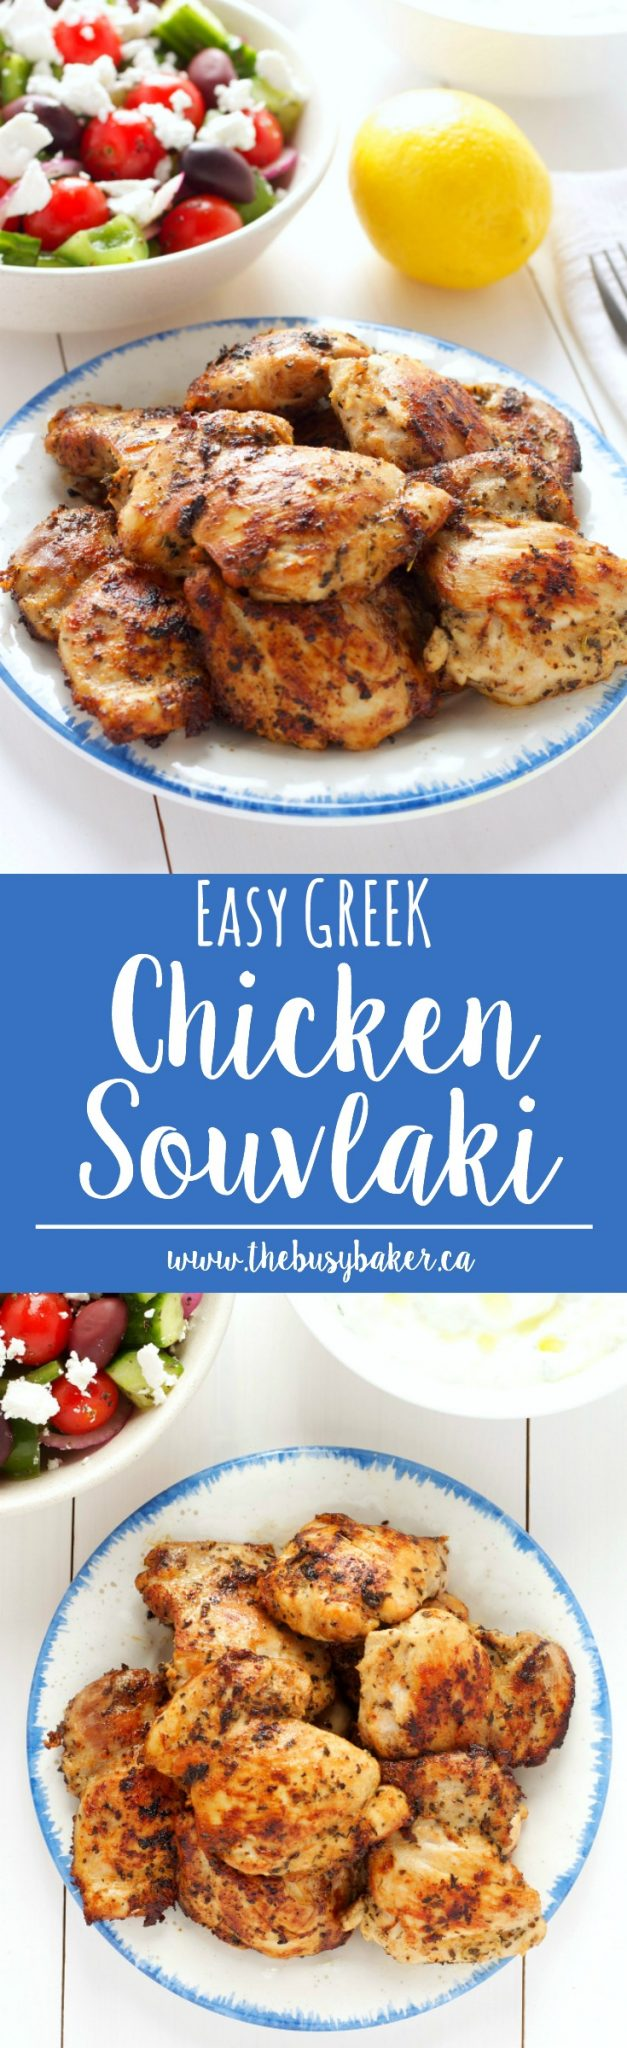 This Easy Greek Chicken Souvlaki is an authentic souvlaki recipe that's made easy with a simple marinade and fresh chicken thighs! Recipe from thebusybaker.ca! via @busybakerblog